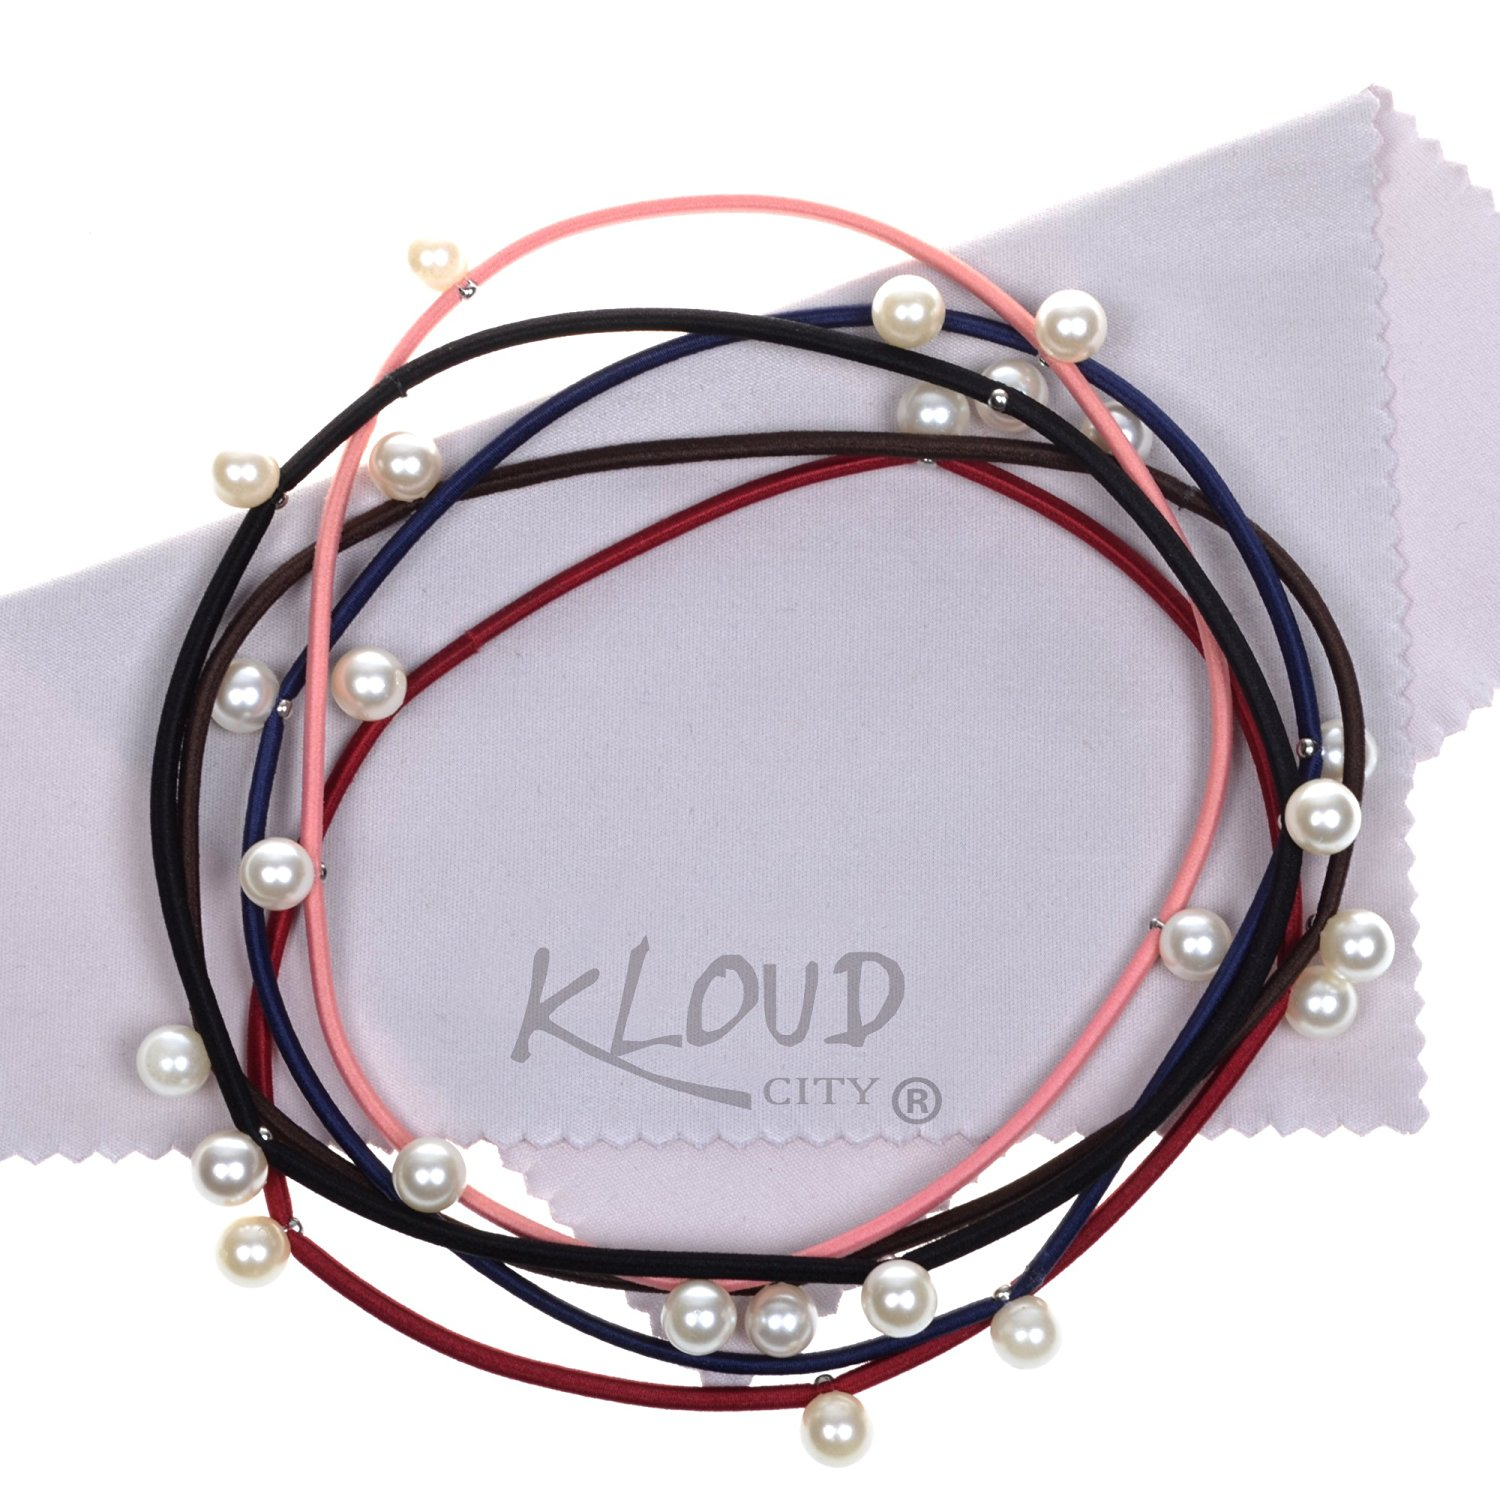 KLOUD City® Pack of 5 Assorted Colors Pearl Elastics Hair Band Headband Hair Ties Ponytail Holders (Style 3)